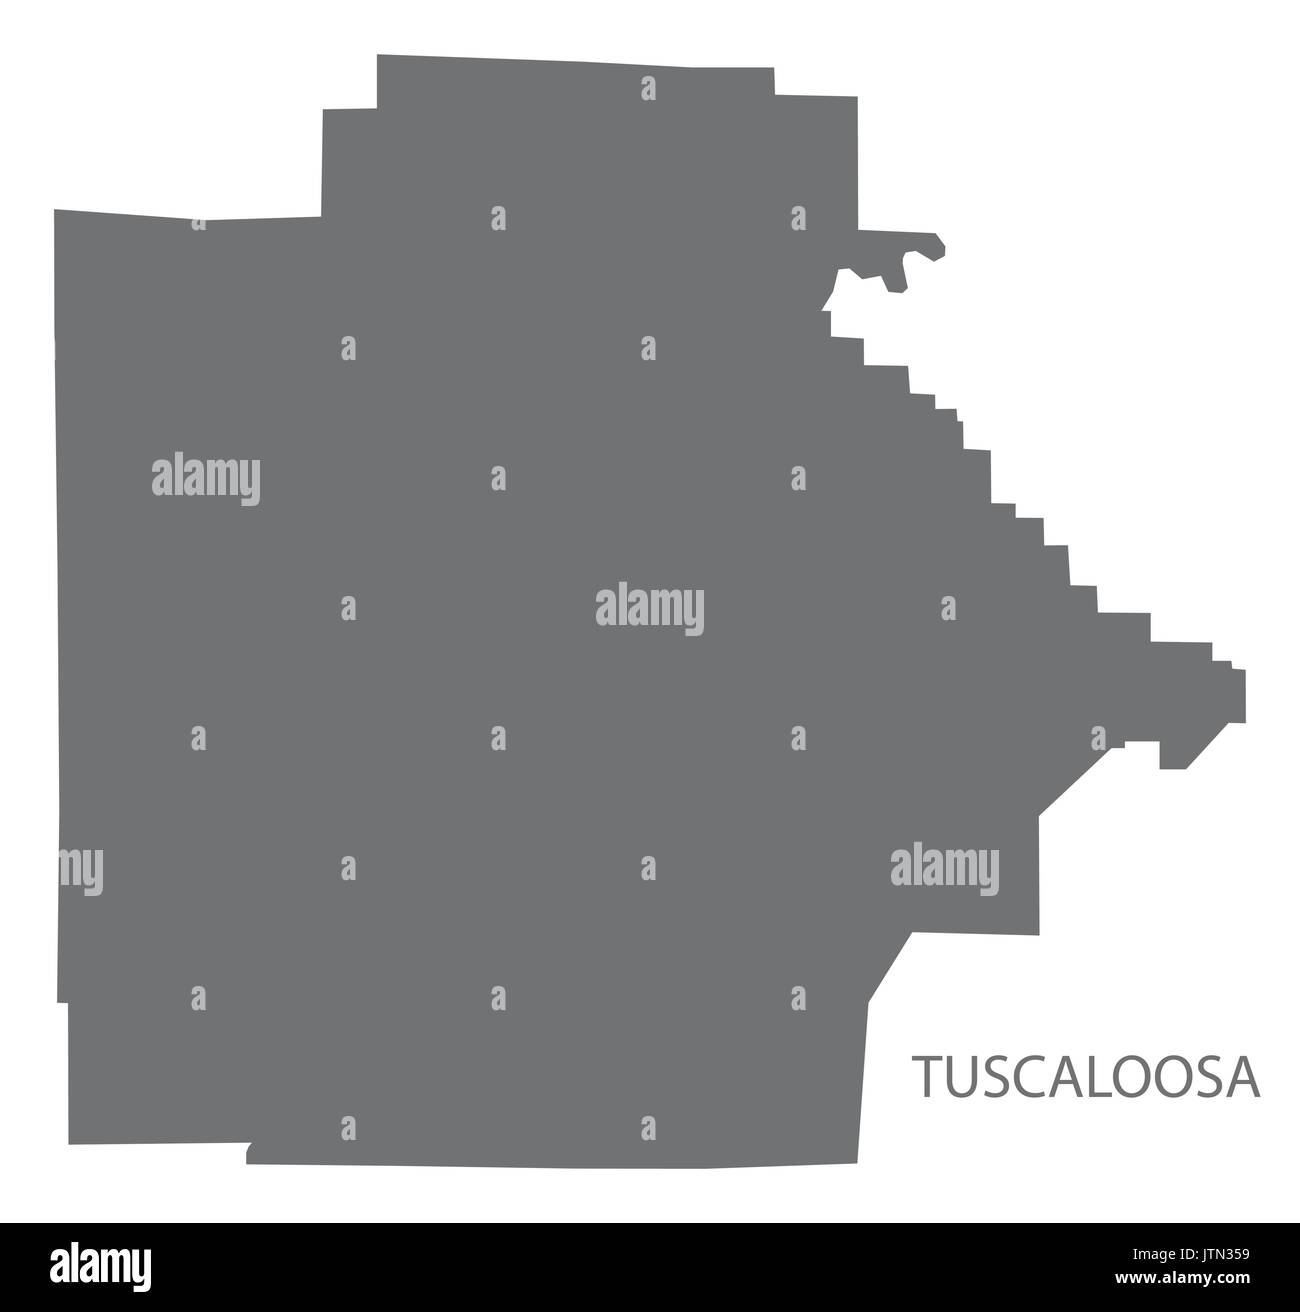 Tuscaloosa county map of Alabama USA grey illustration silhouette - Stock Image